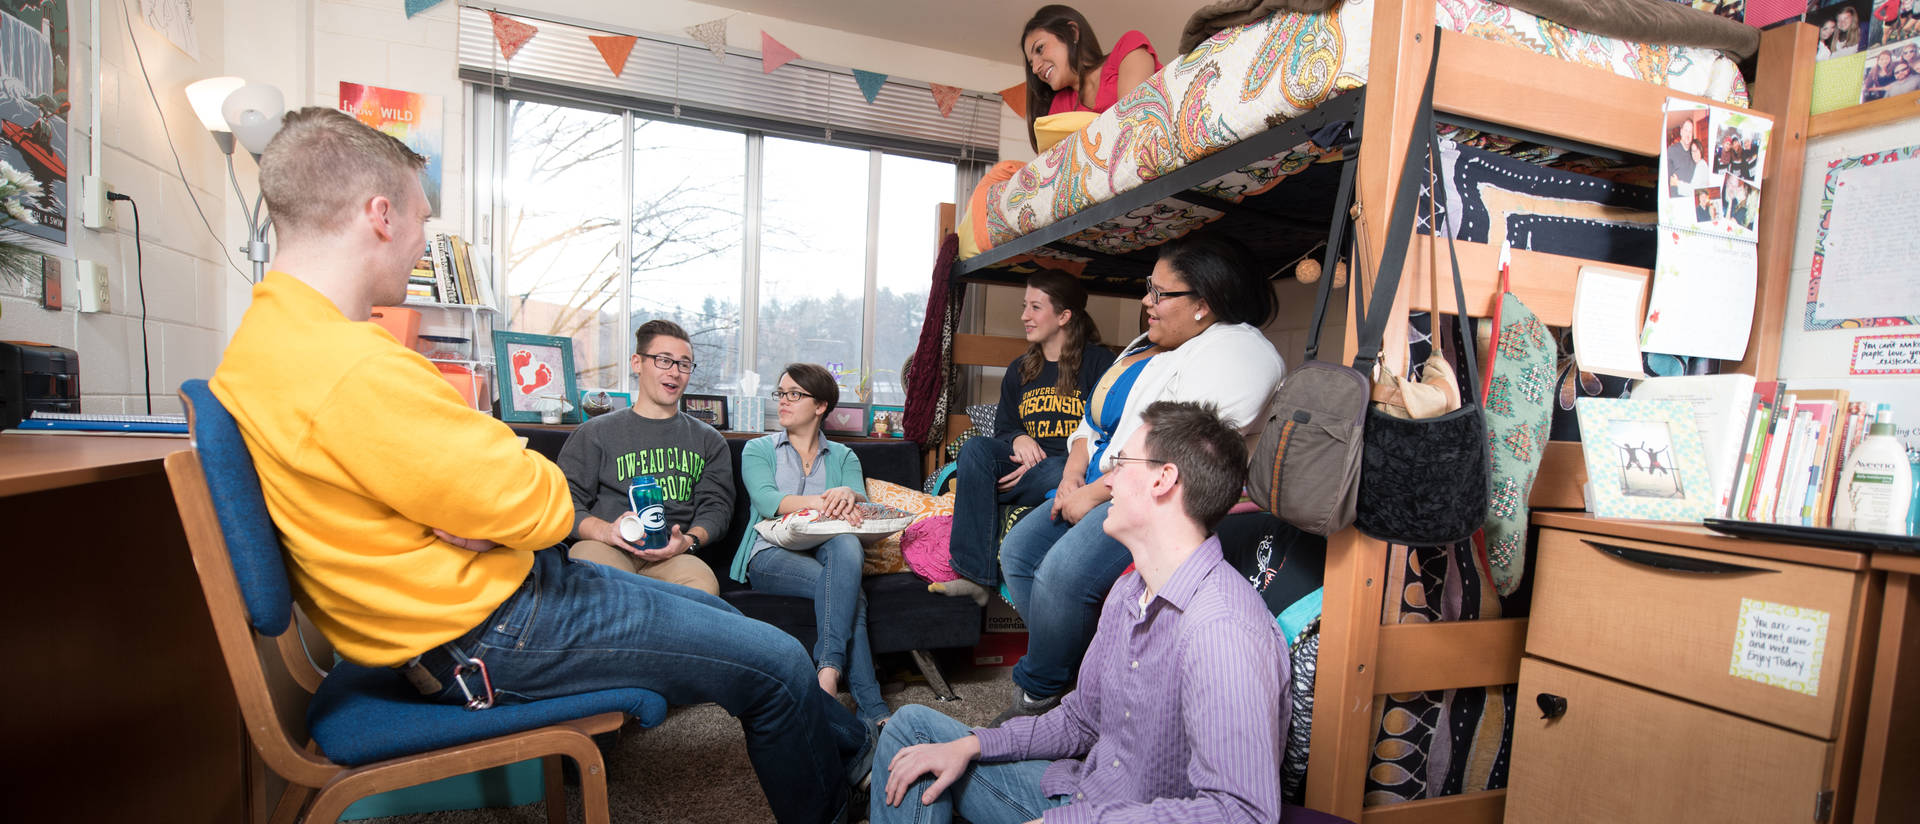 A Group of UWEC students gathered in a dorm room socializing